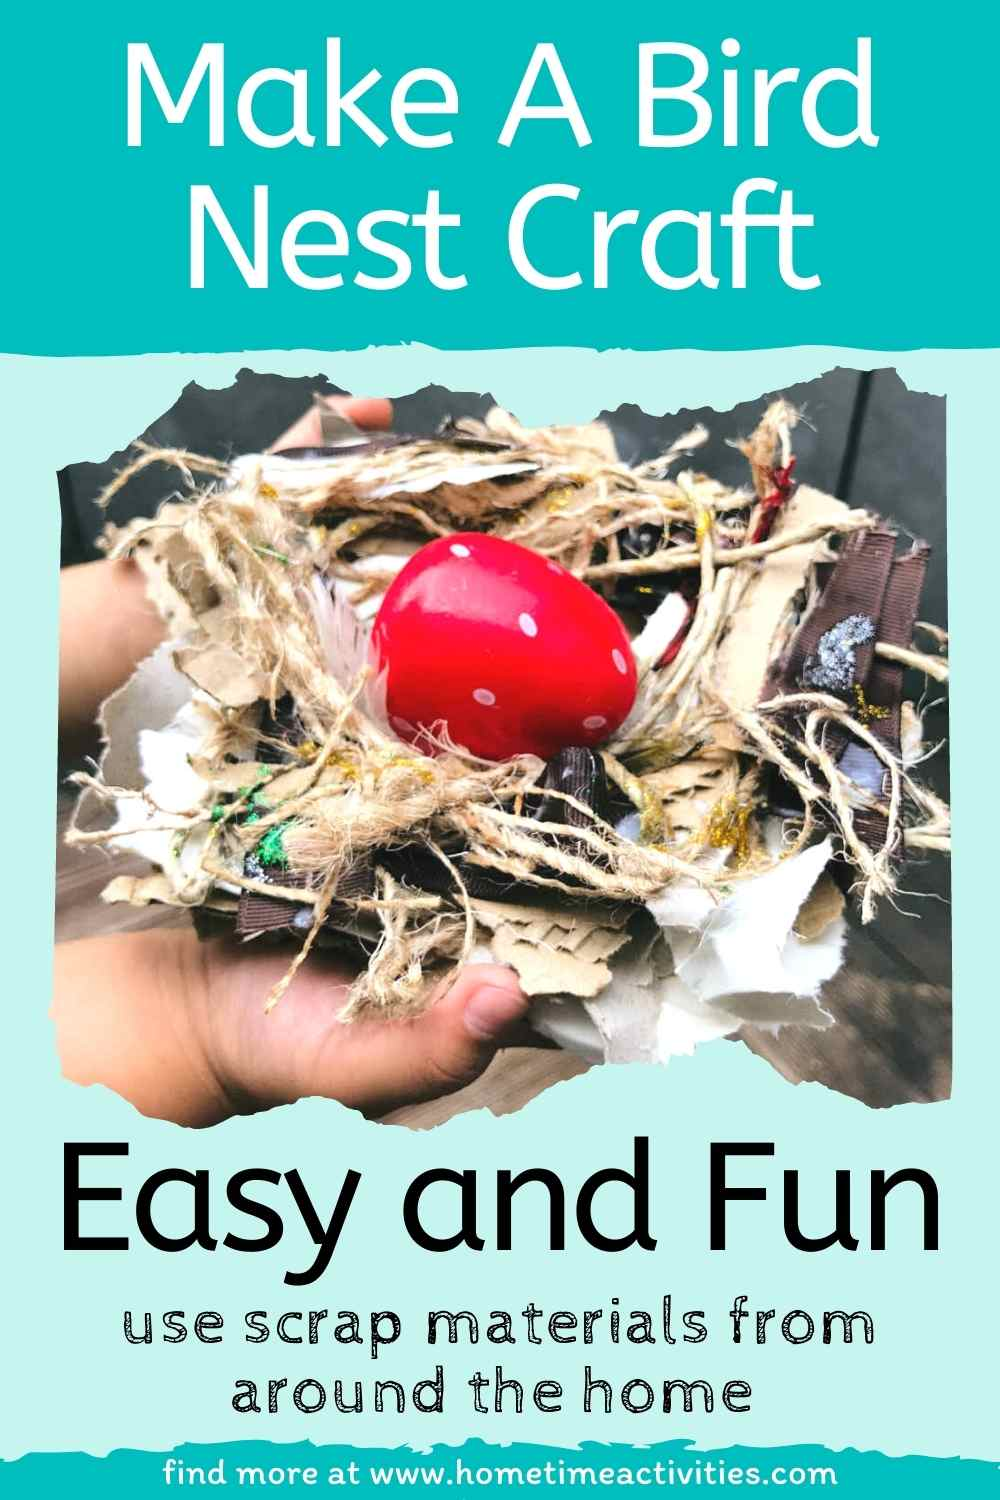 Bird nest craft idea for kids, preschoolers and toddlers - image with text